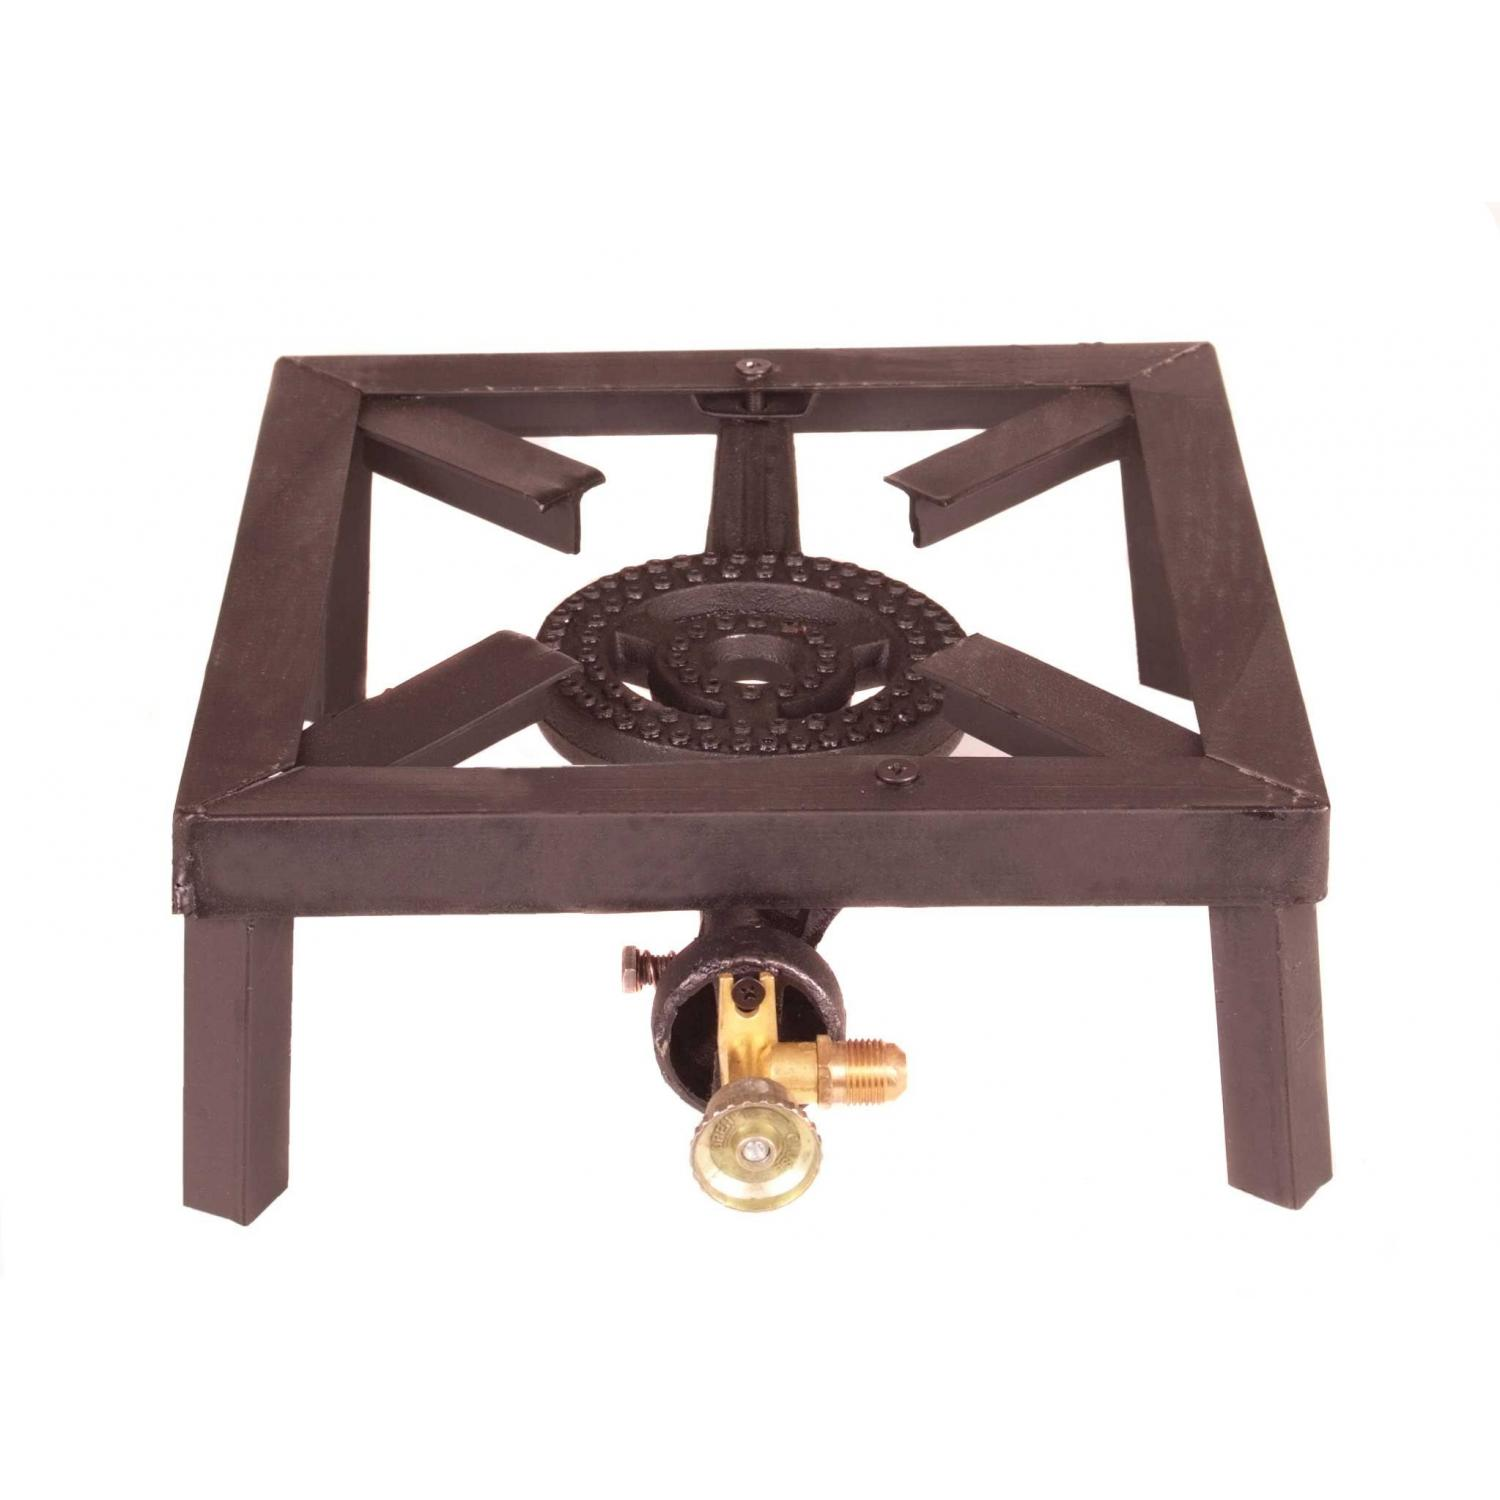 ... Bayou Classic Single Burner Patio Stove By Bayou Classic High Pressure  Outdoor Stove With Windscreen ...